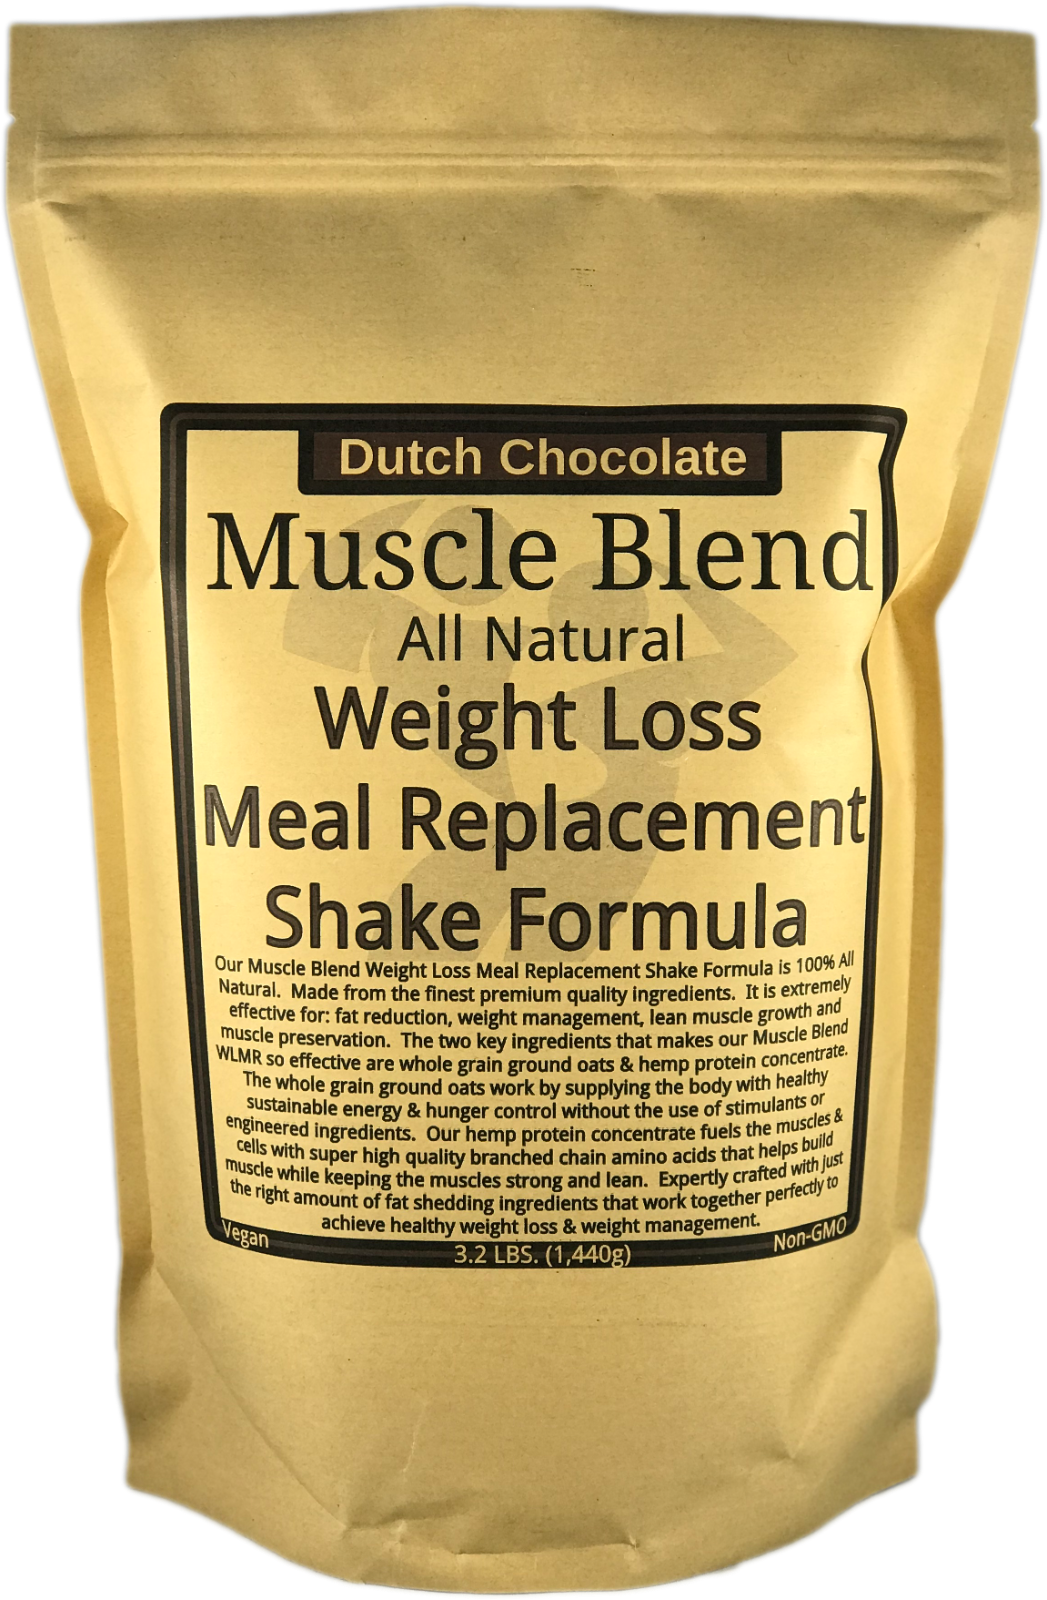 Muscle Blend Weight Loss Meal Replacement Shake Formula, All Natural, Non-GMO